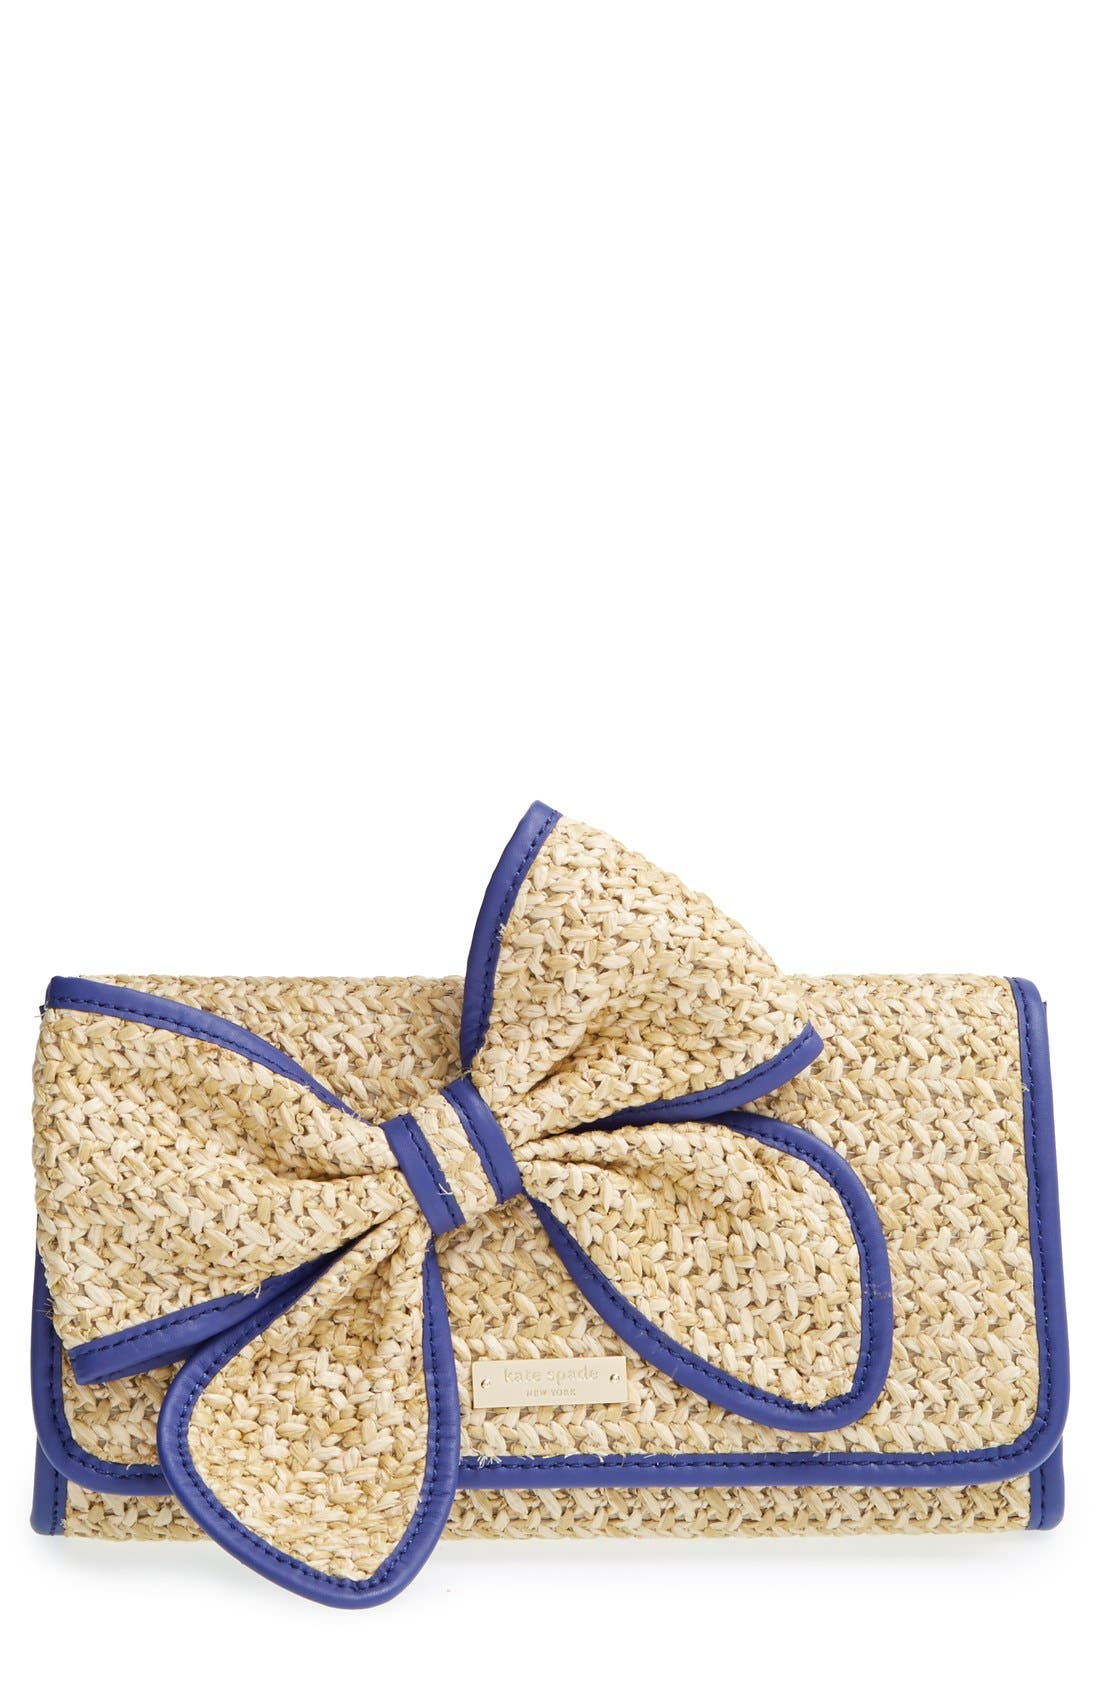 Main Image - kate spade new york 'belle place - viv' straw clutch